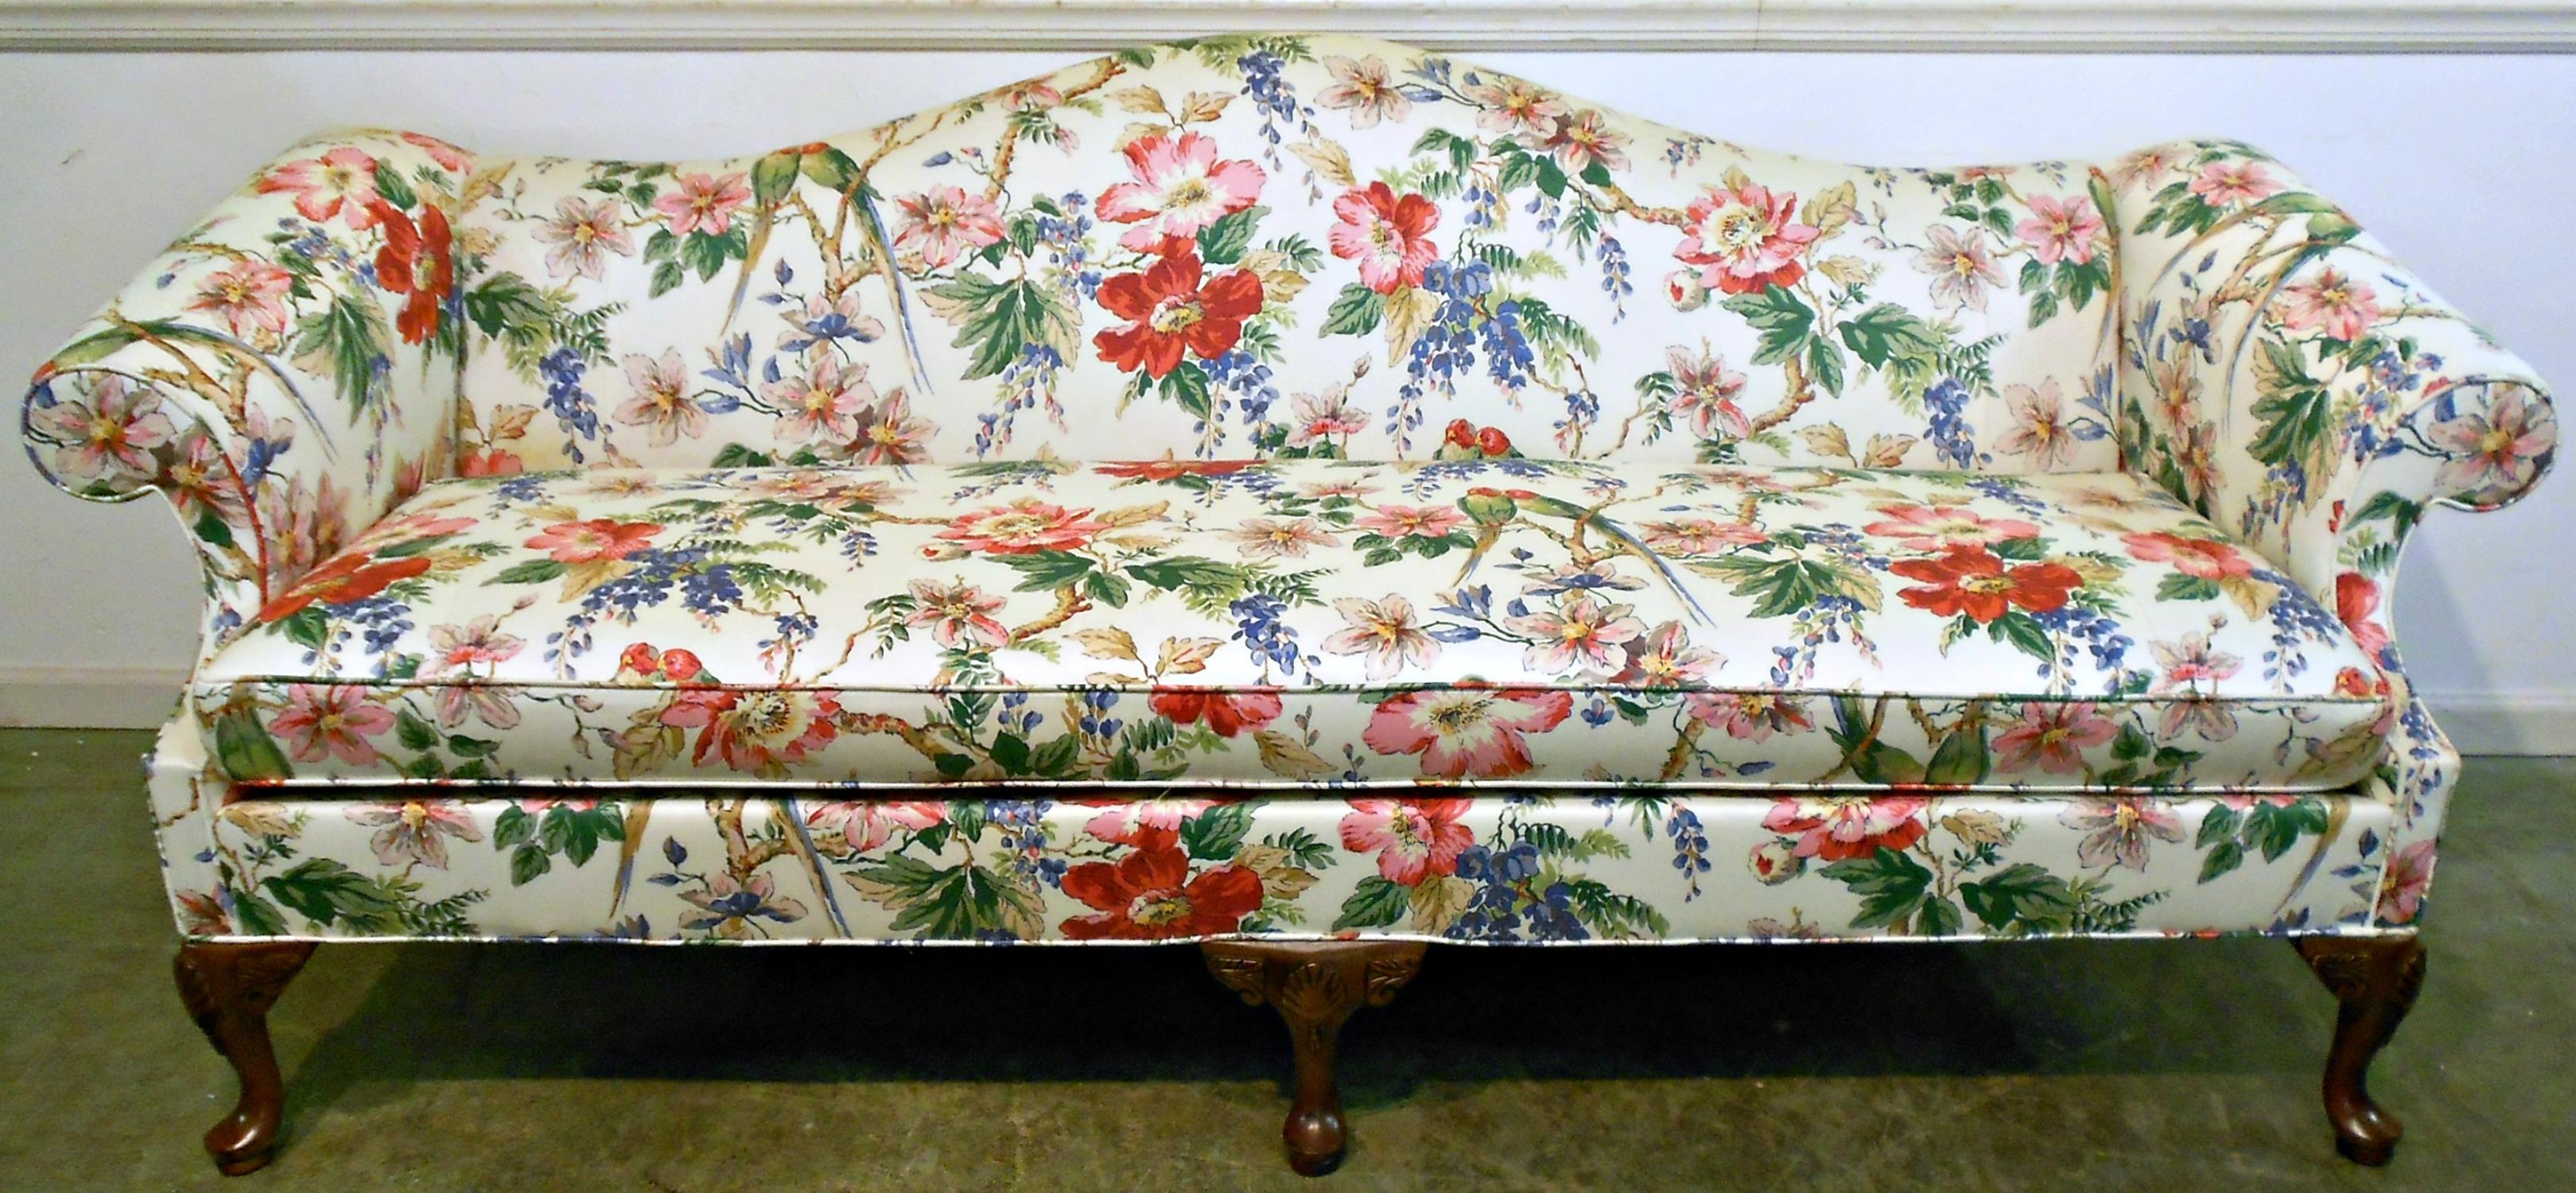 Floral Sofa Intended For Floral Sofas (View 6 of 20)